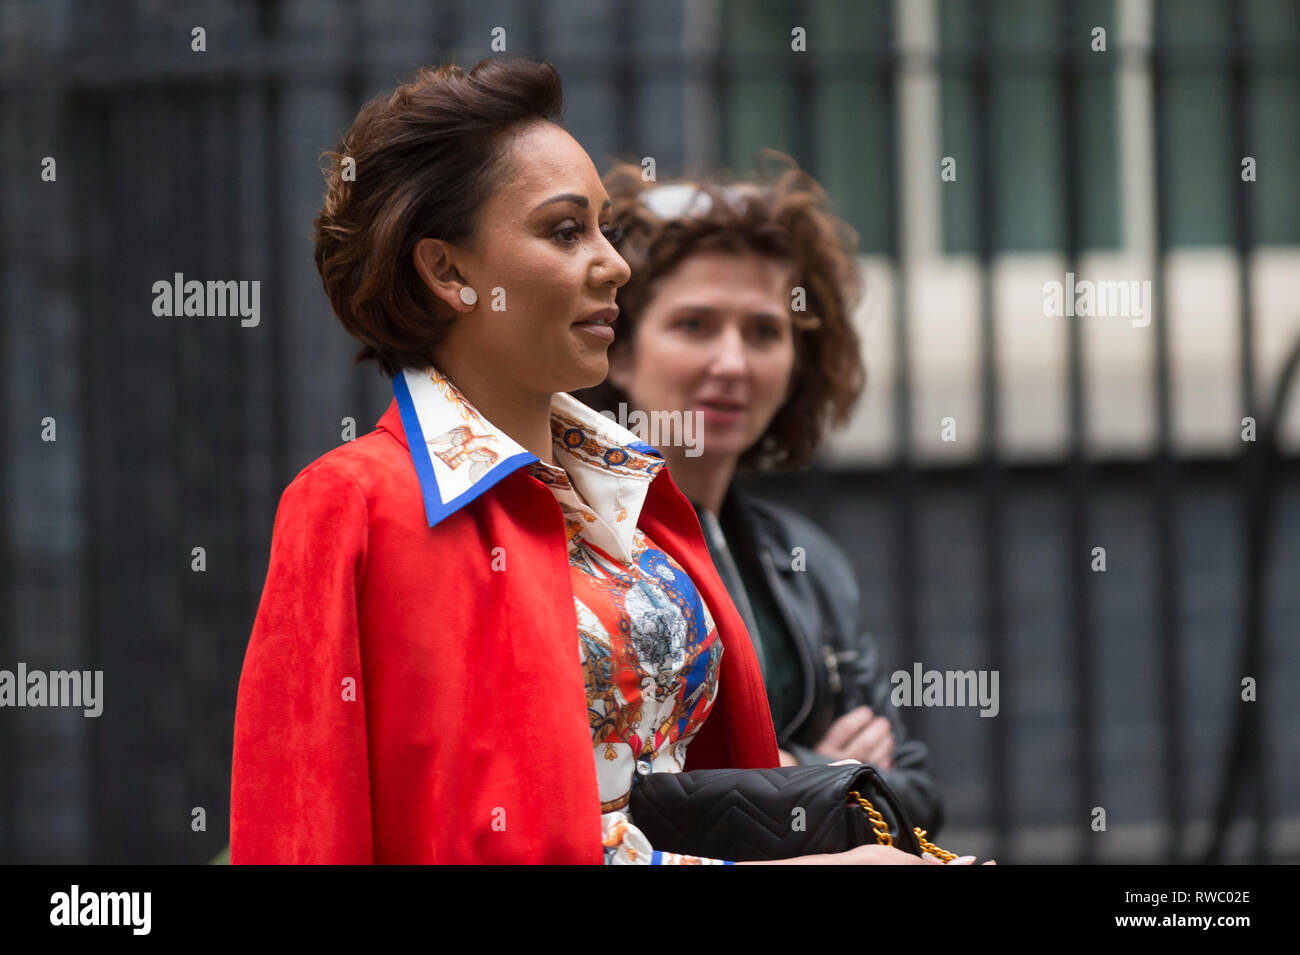 Downing Street, London, UK. 5th Mar 2019. Ex Spice Girl, Melanie Brown, known as Mel B, departs number 10 Downing Street accompanied by her staff.  Credit: Stephen Chung / Alamy Live News - Stock Image